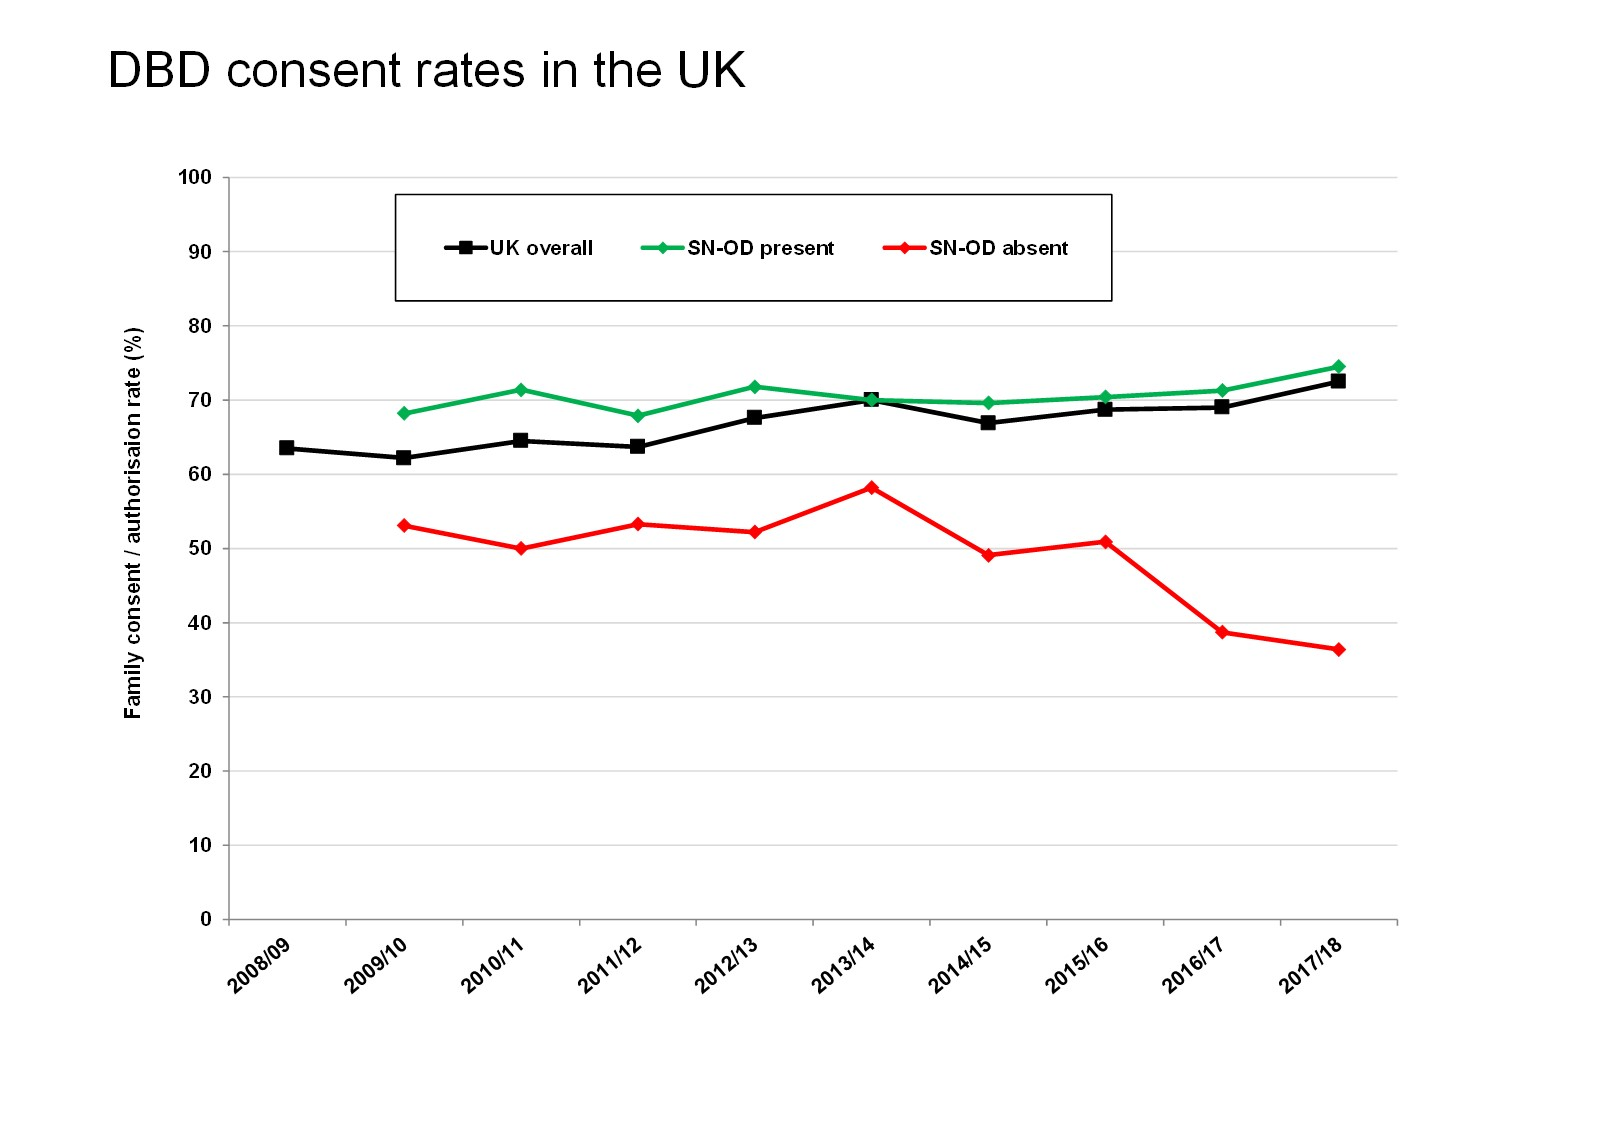 DBD consent rates in the UK (jpg)